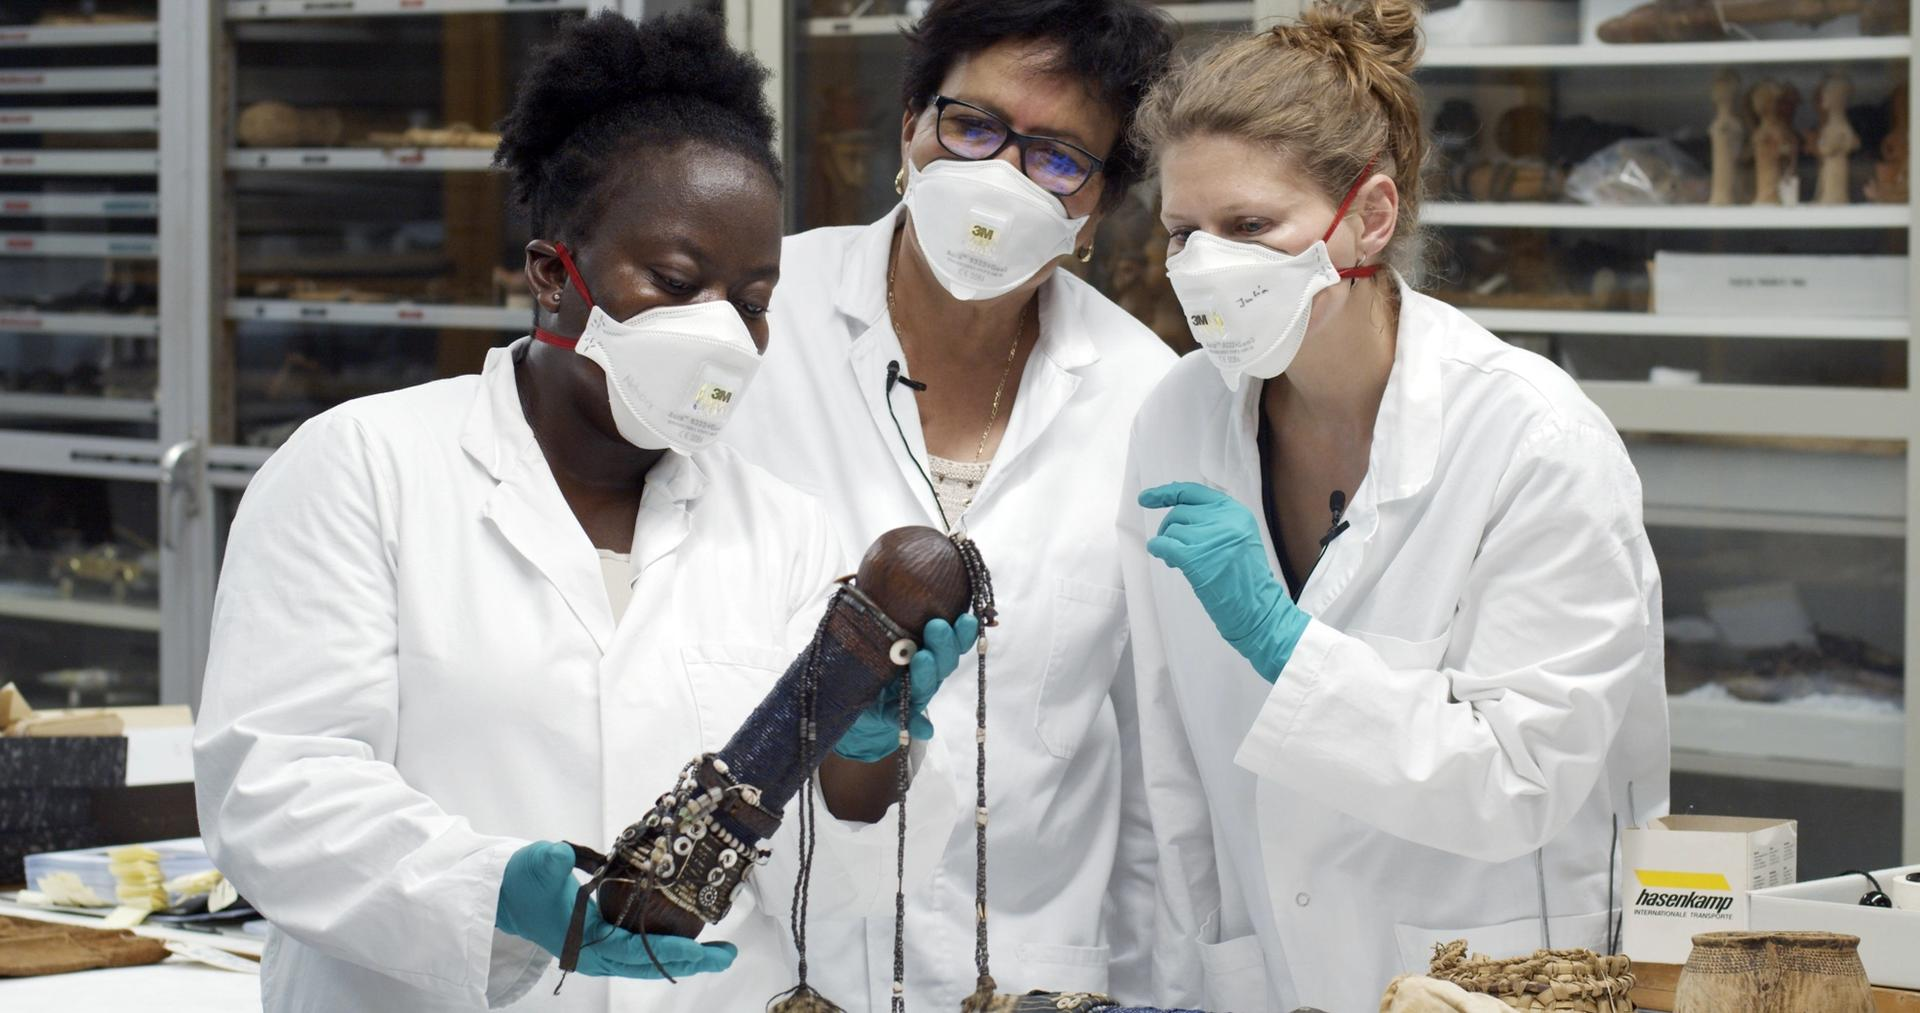 Researchers examining a work in the depot of the Ethnological Museum Berlin © Moritz Fehr, 2019